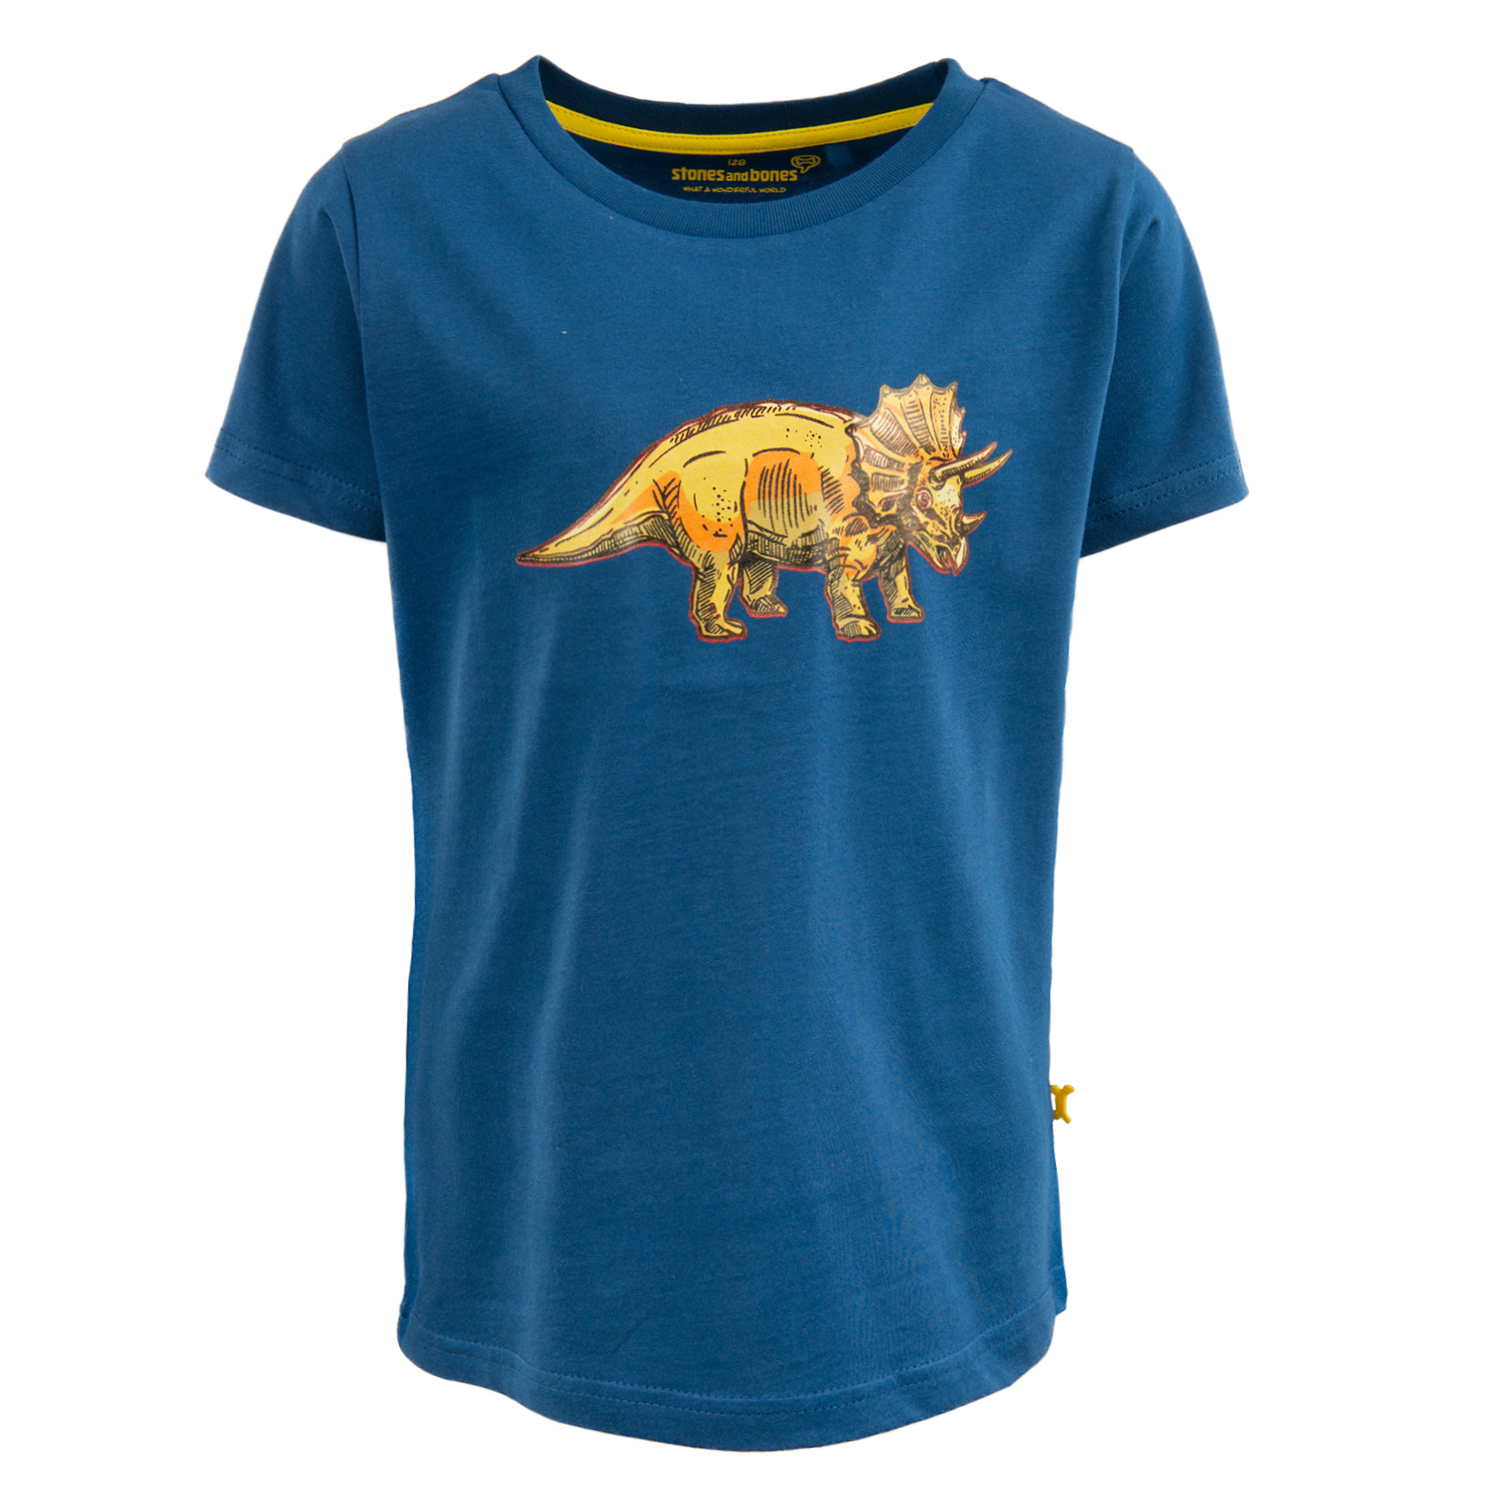 Russell - TRICERATOPS cobalt